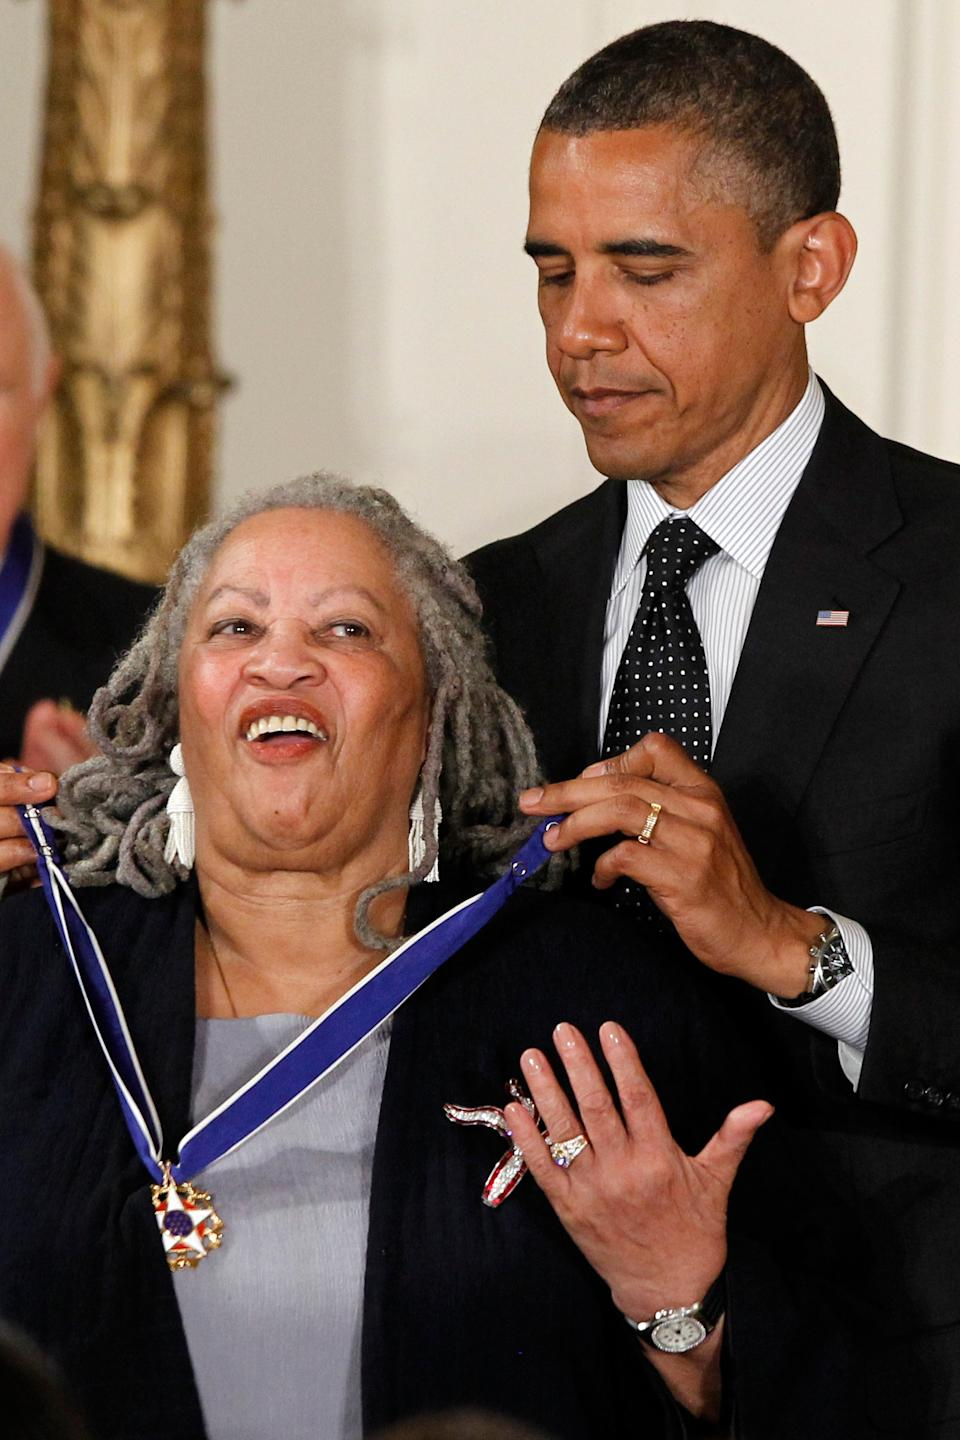 President Barack Obama awards the Medal of Freedom to author Toni Morrison at the White House on May 29, 2012.